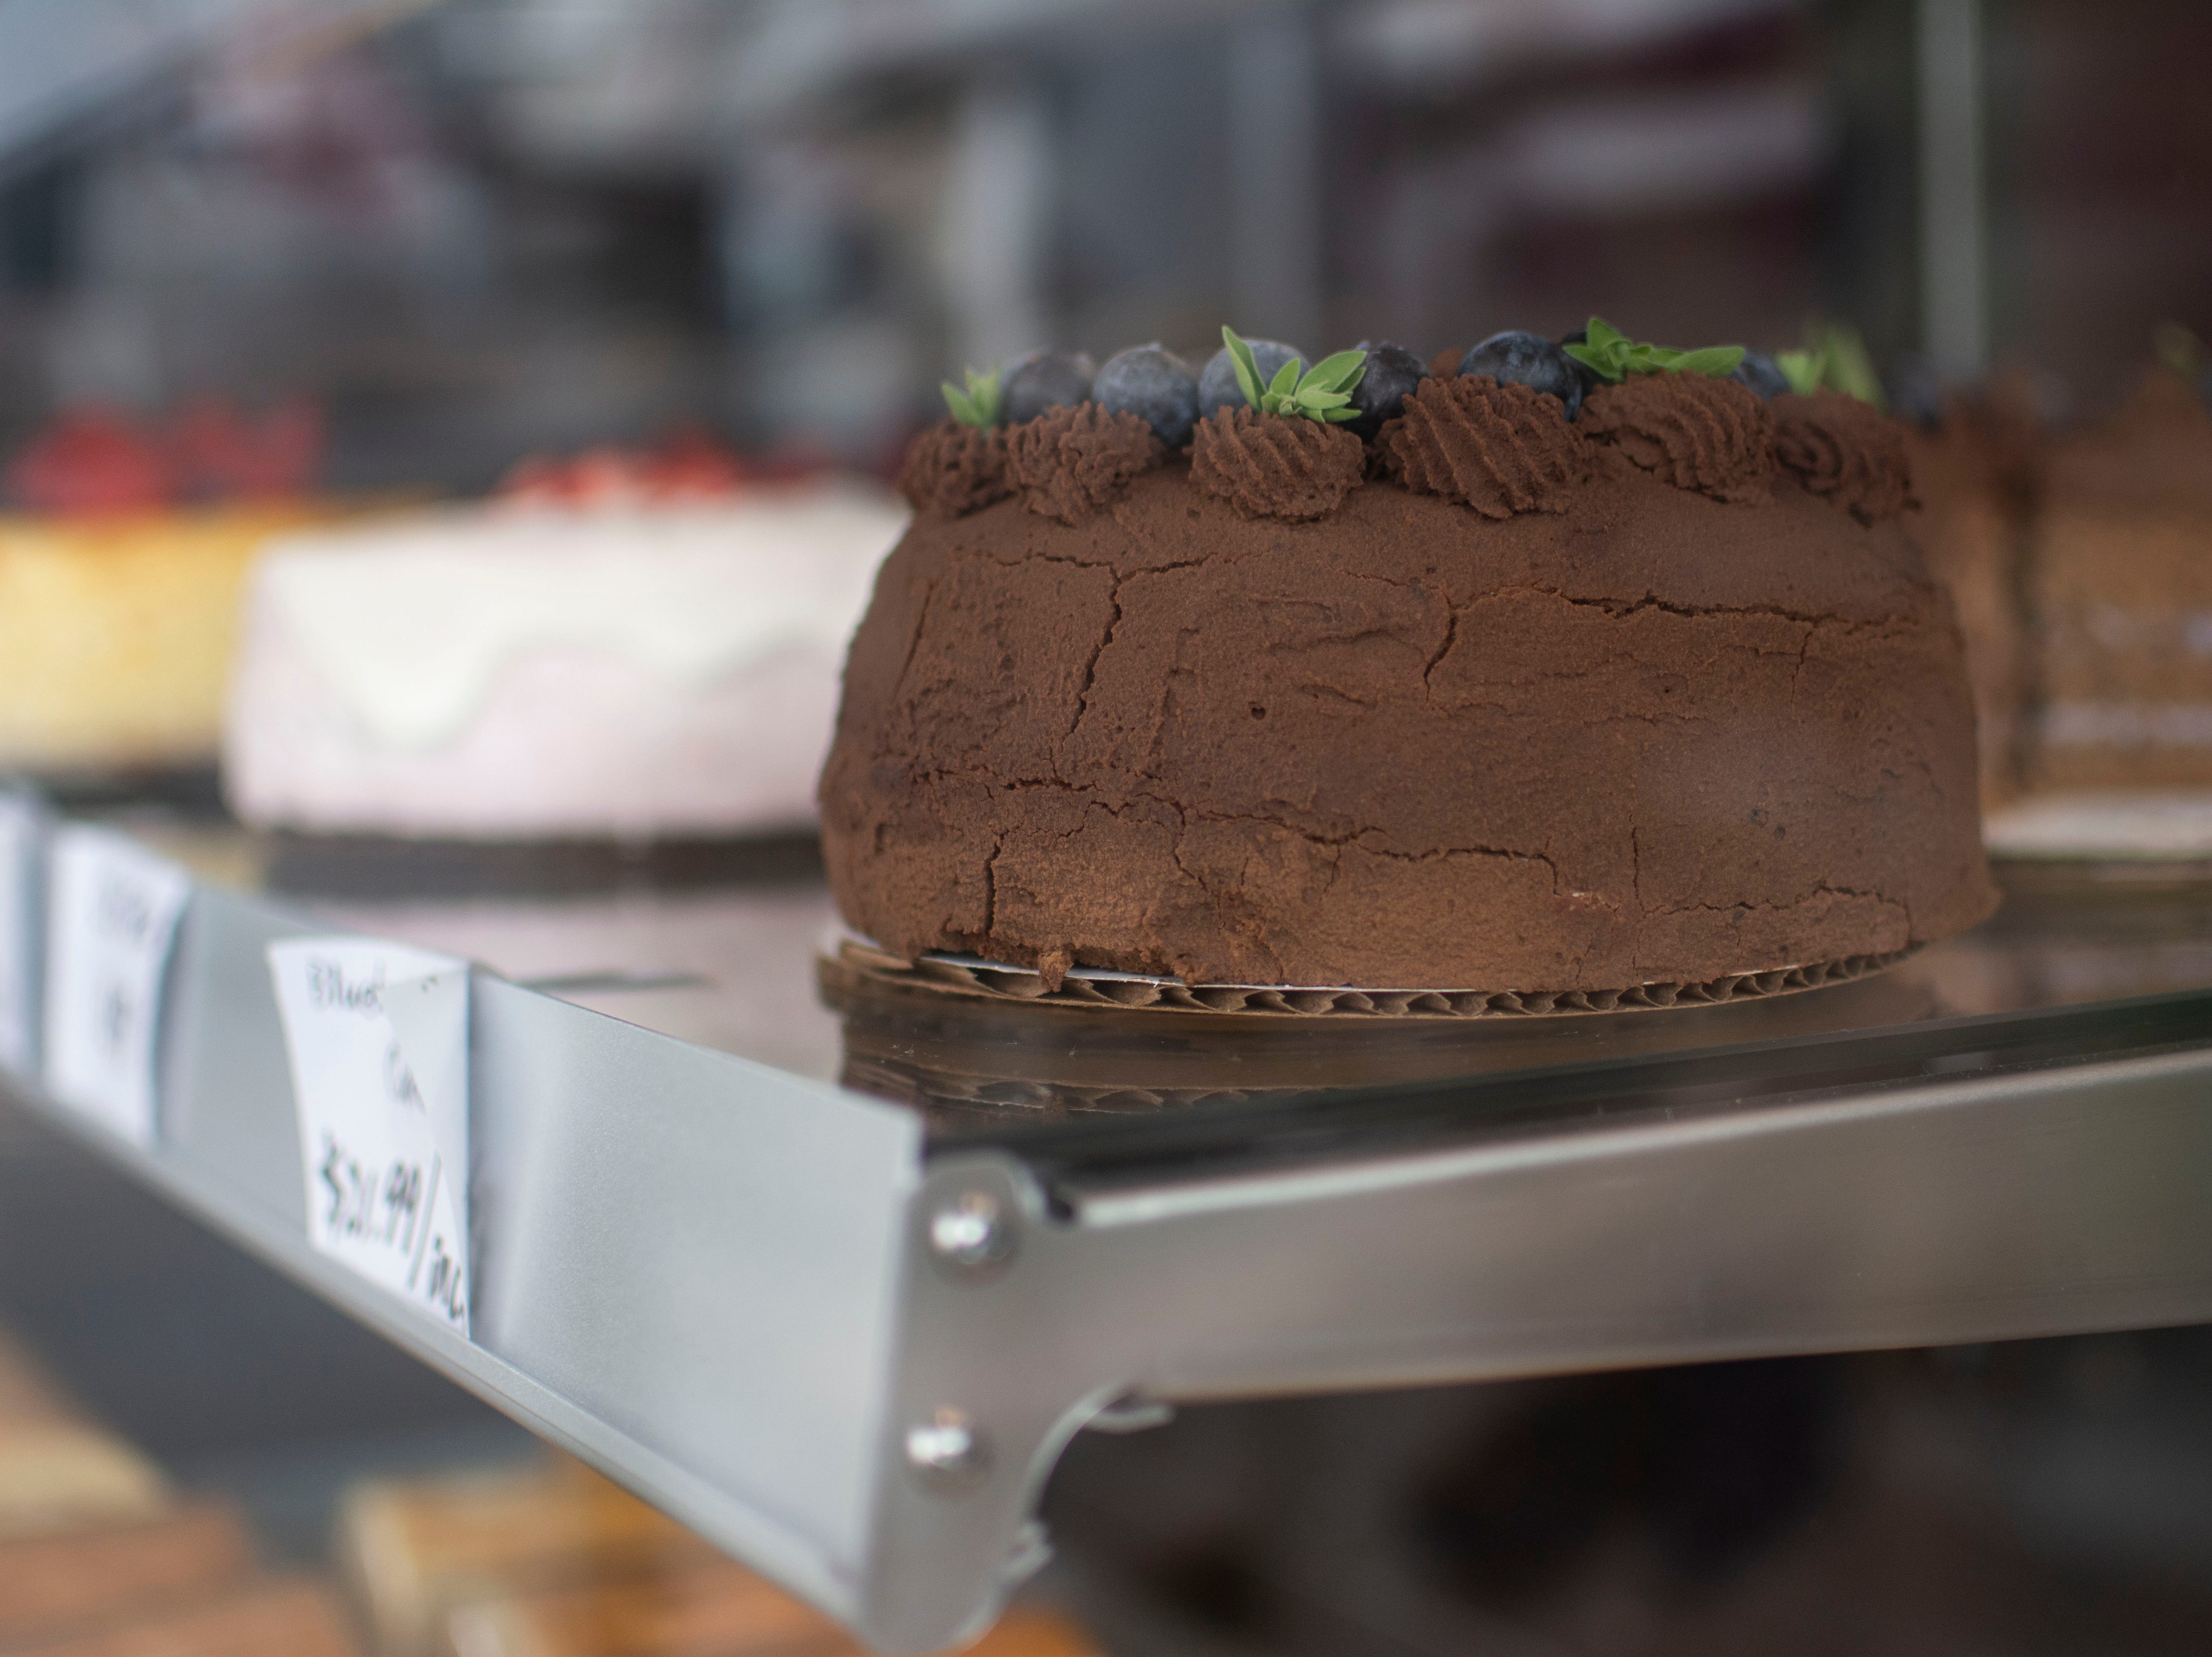 Cakes can be bought whole or by the slice at Morning Light bakery in Winooski